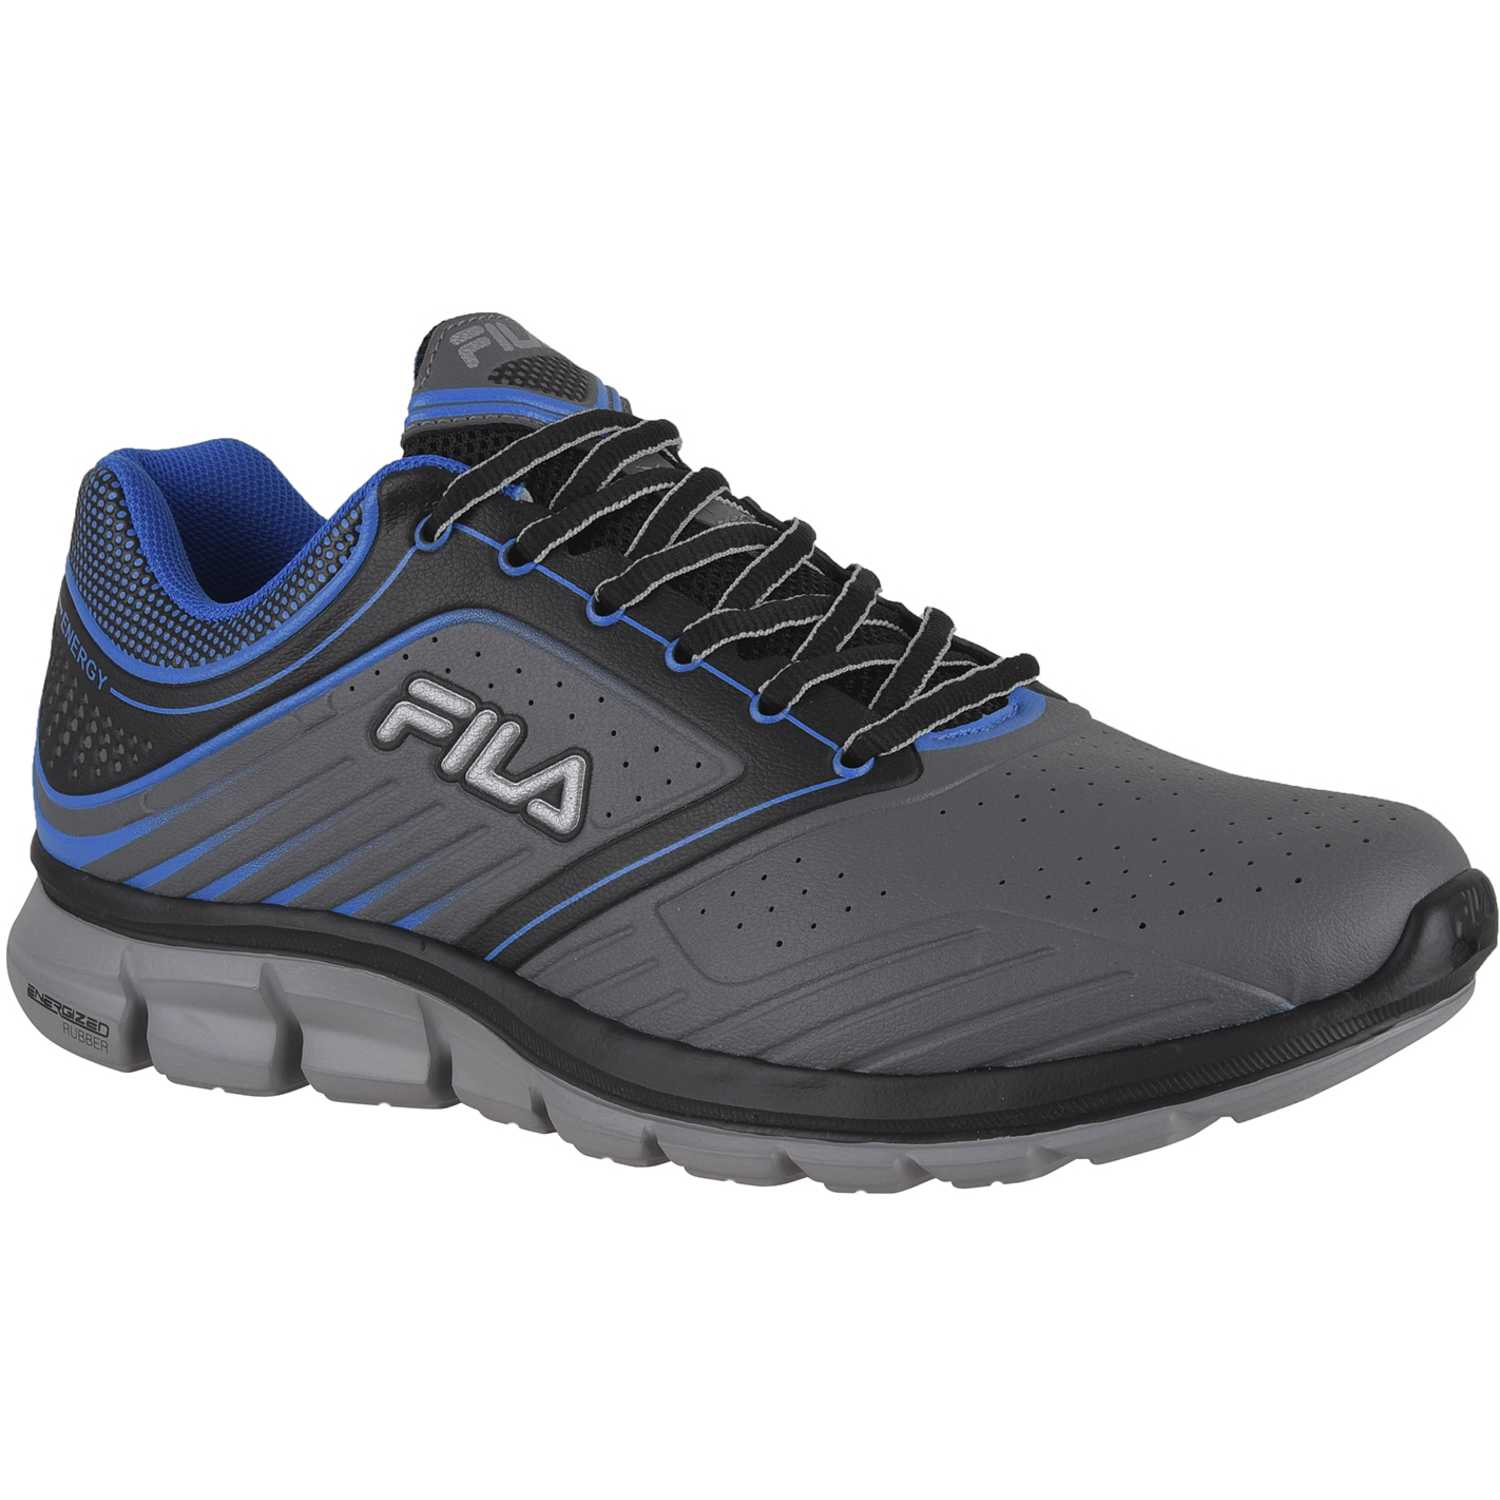 Fila energy Gris / celeste Walking